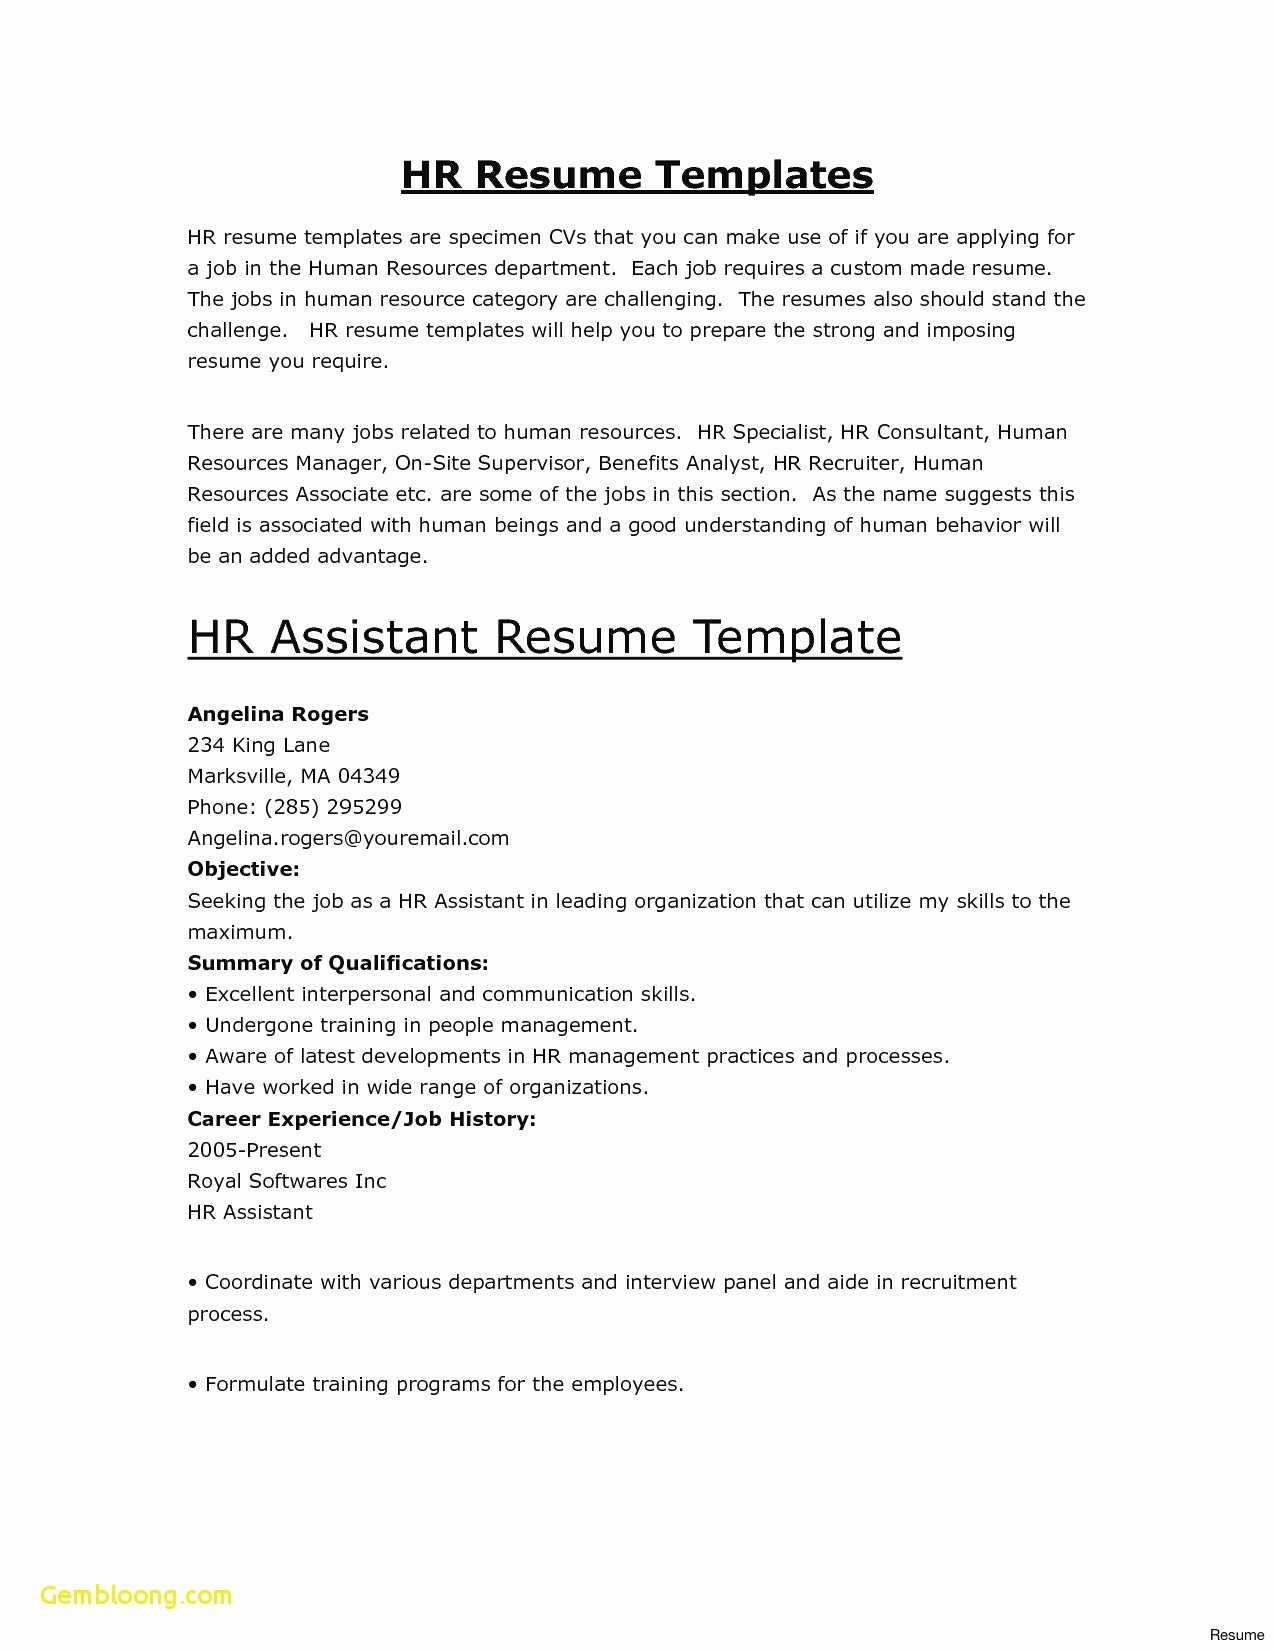 training letter template example-letter of good conduct template cover letter for resume template elegant awesome pr resume template elegant dictionary template 0d archives 9q 5-g